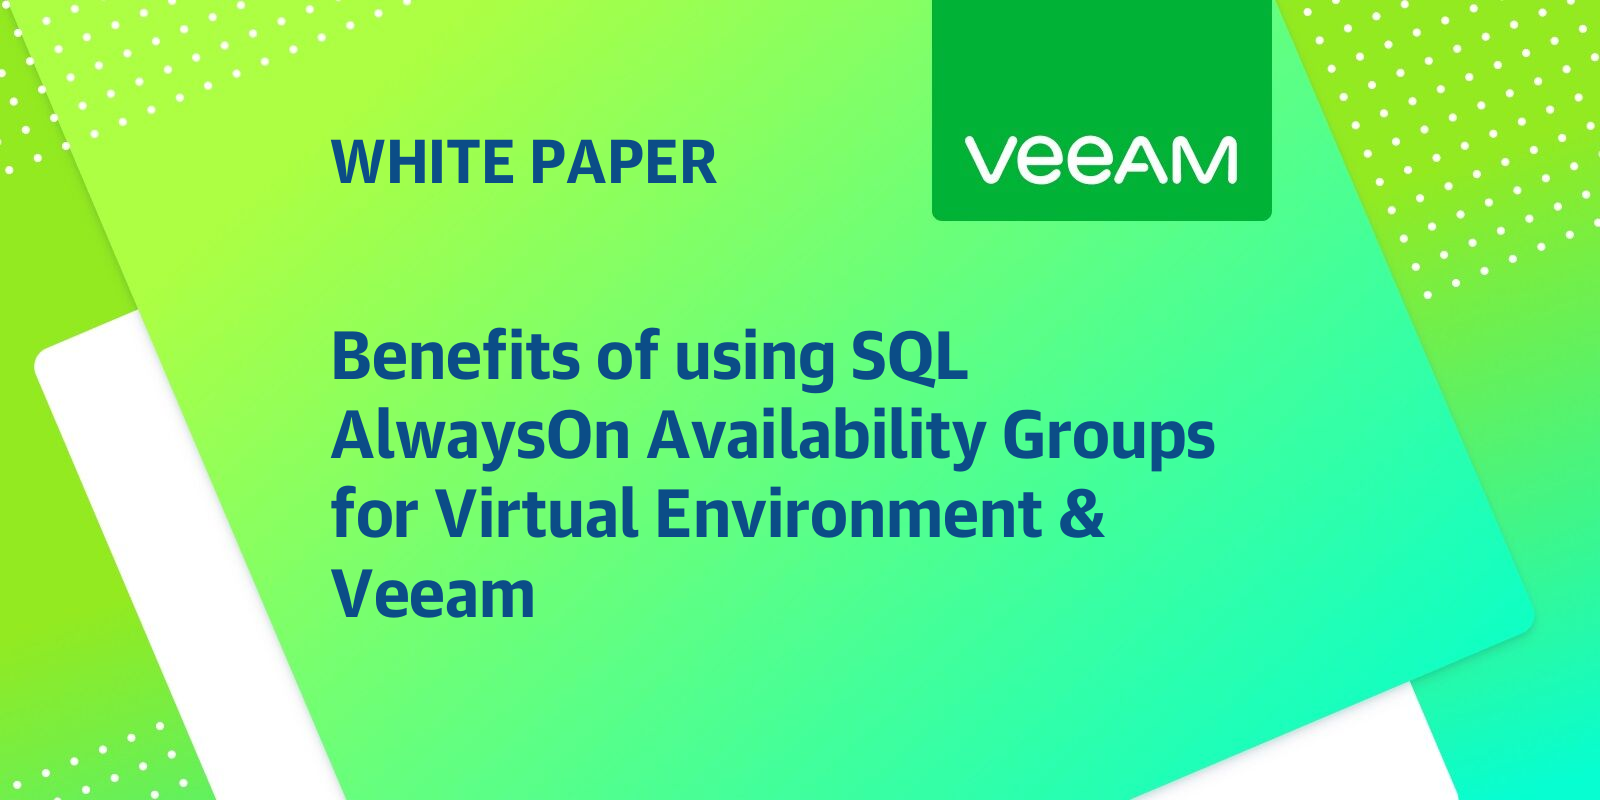 Sql Alwayson Availability Groups For Virtual Environment